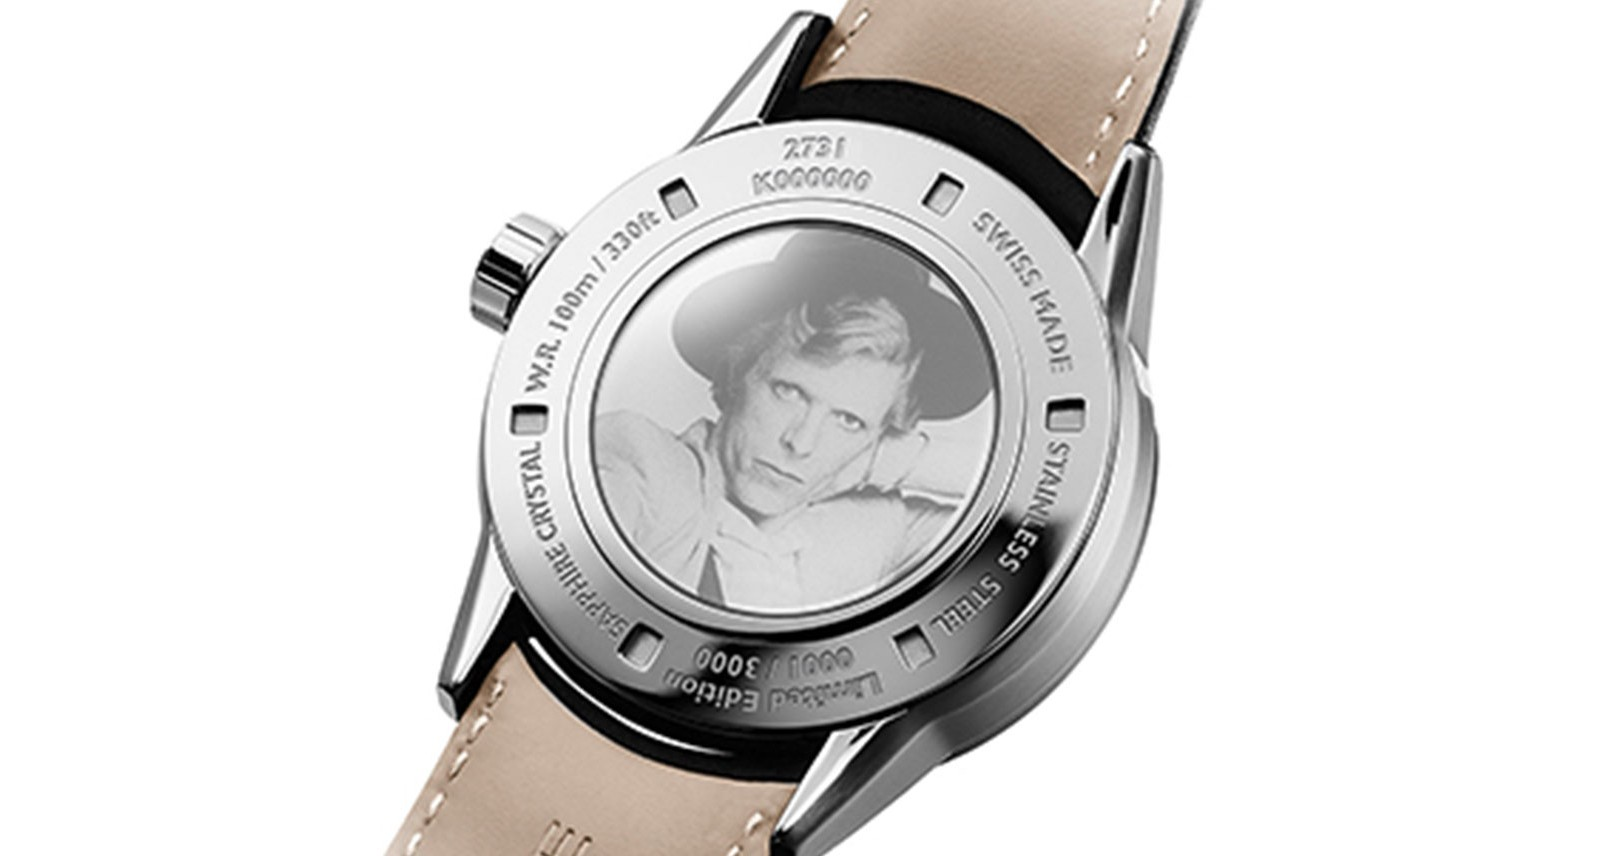 Raymond Weil's Latest Freelancer Is a Stunning Tribute to David Bowie